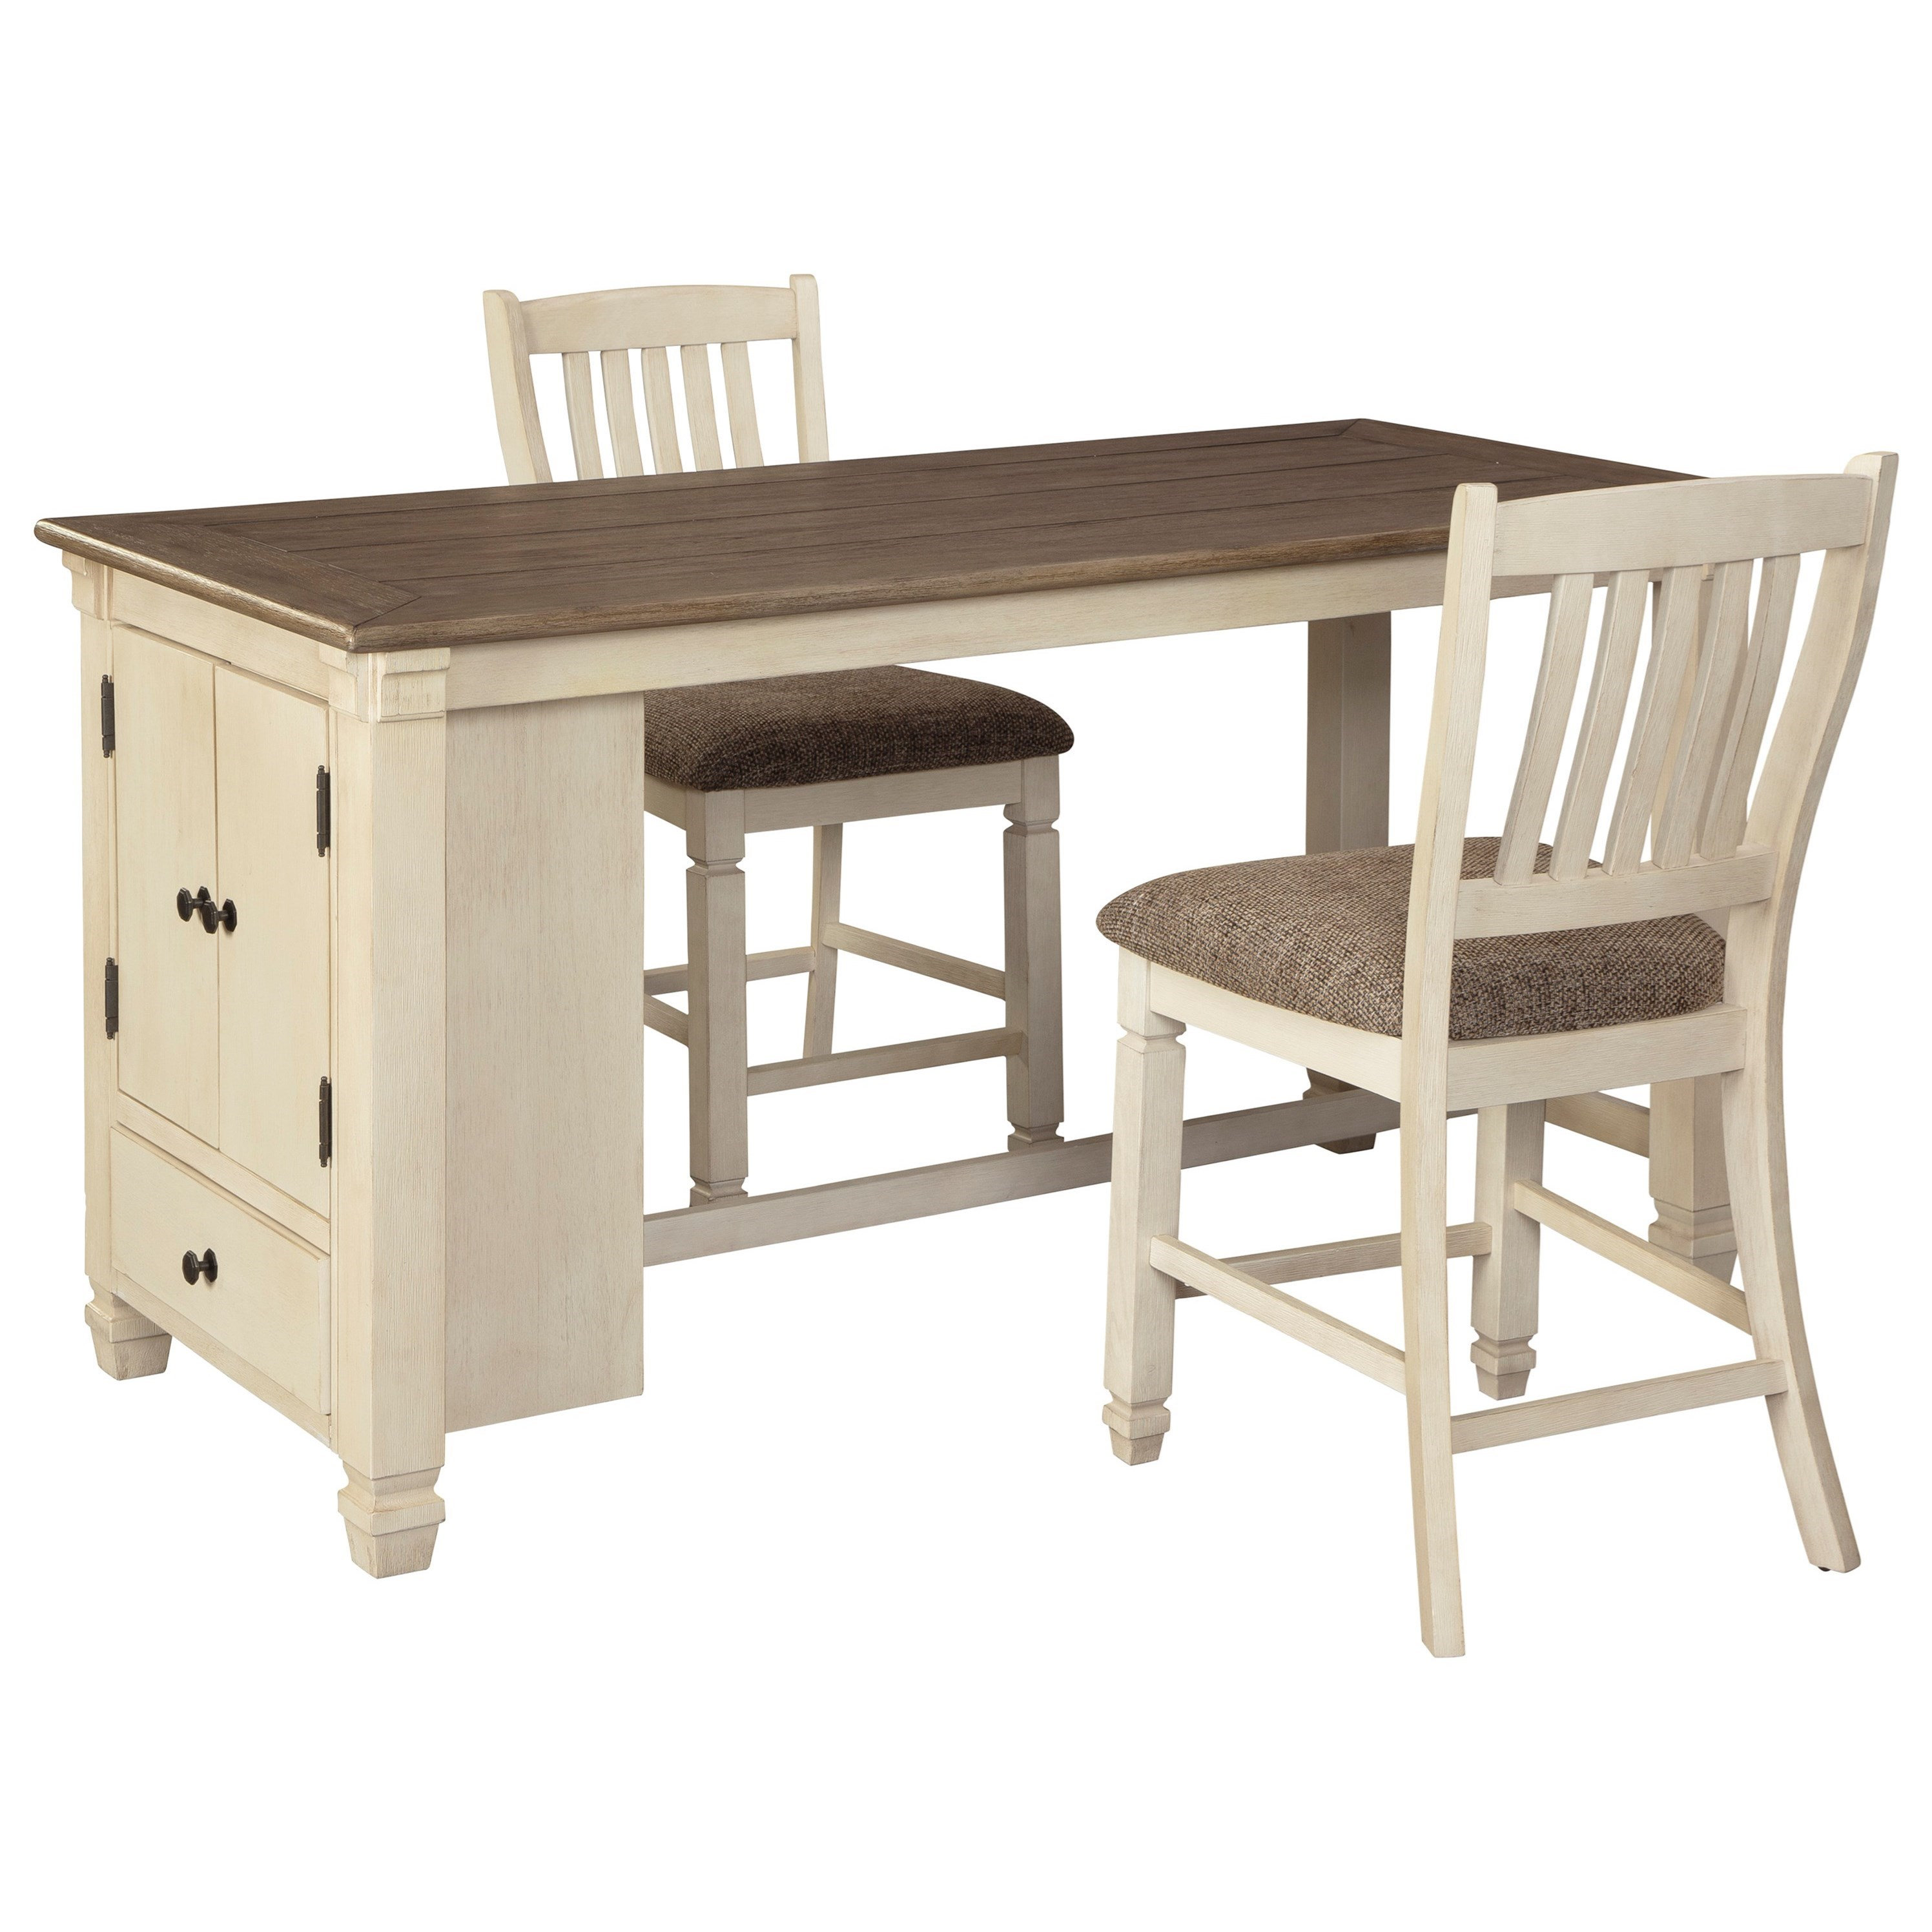 Bolanburg 3-Piece Rect. Dining Room Counter Table Set by Ashley (Signature Design) at Johnny Janosik